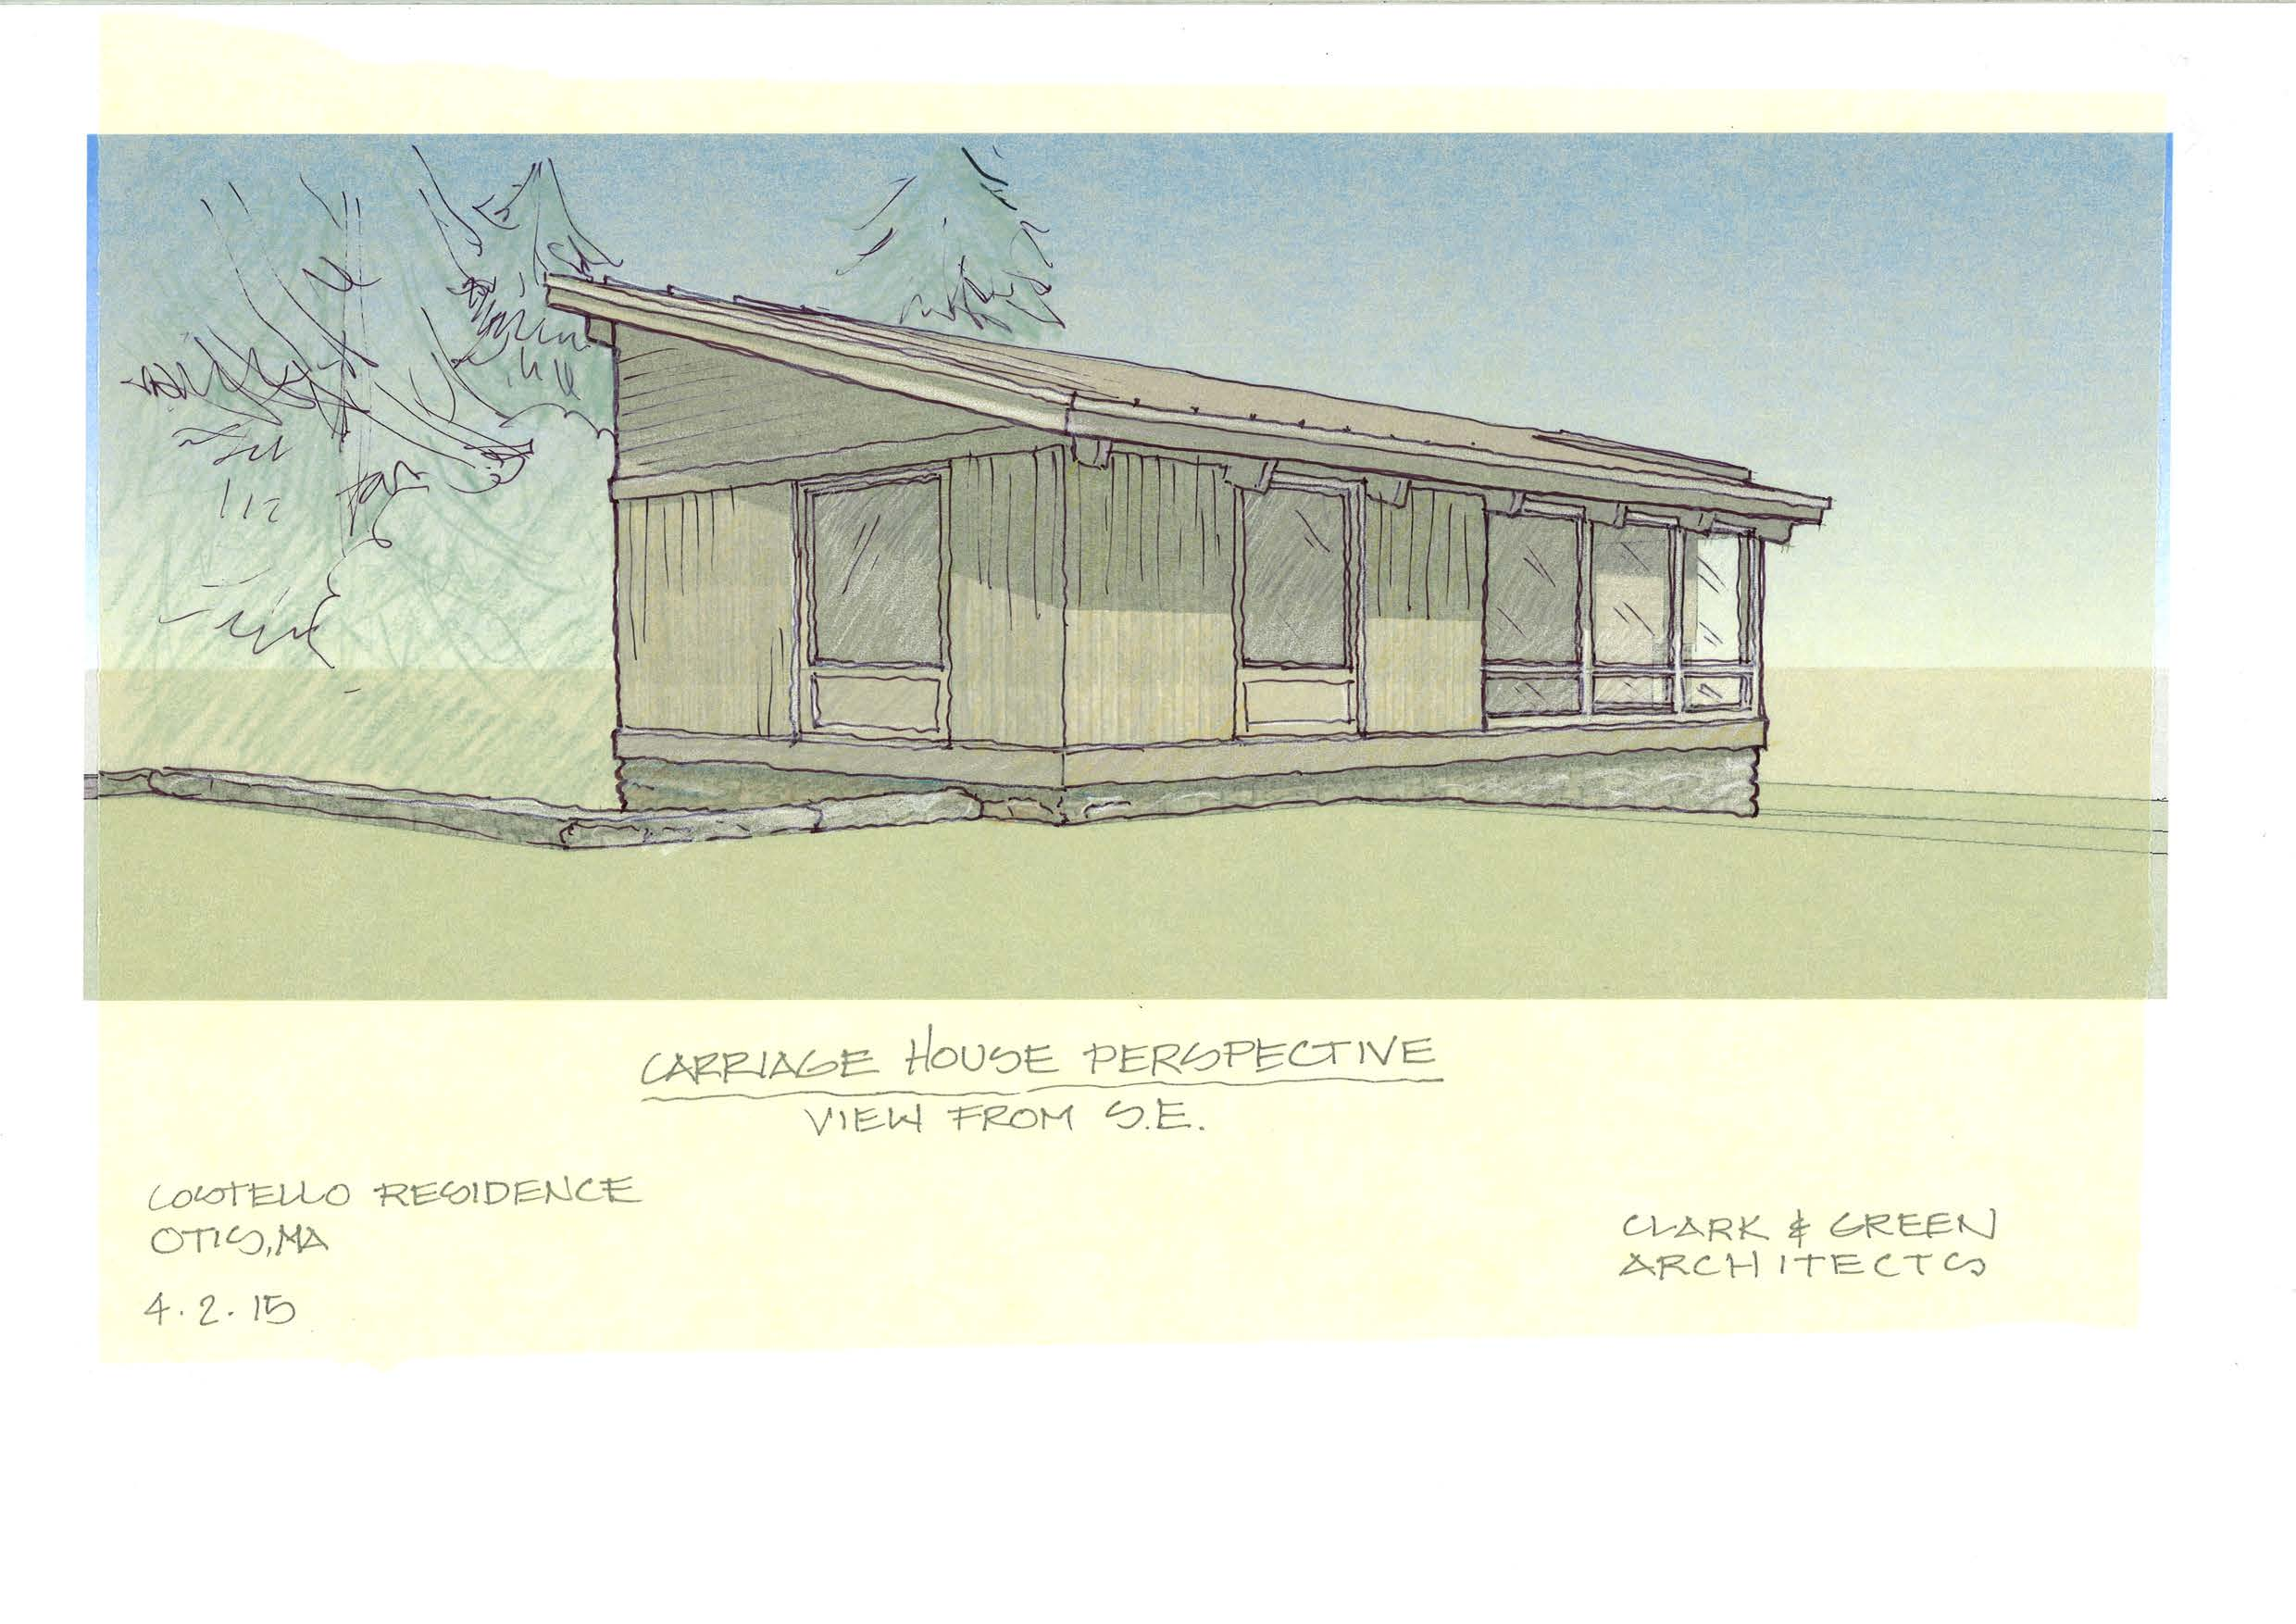 2015.04.02_CarriageHouse-prelim-perspective.jpg